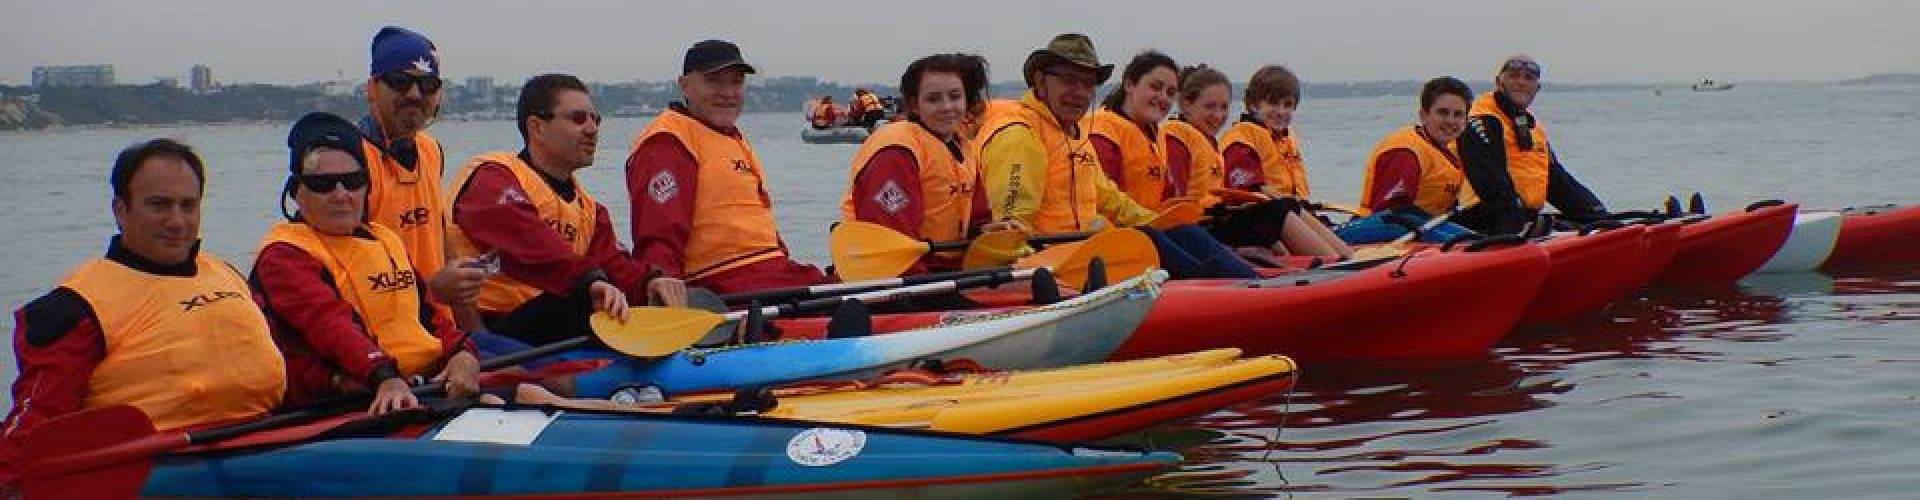 https://www.rlss-poole.org.uk/wp-content/uploads/2014/09/cropped-hrace1.jpg